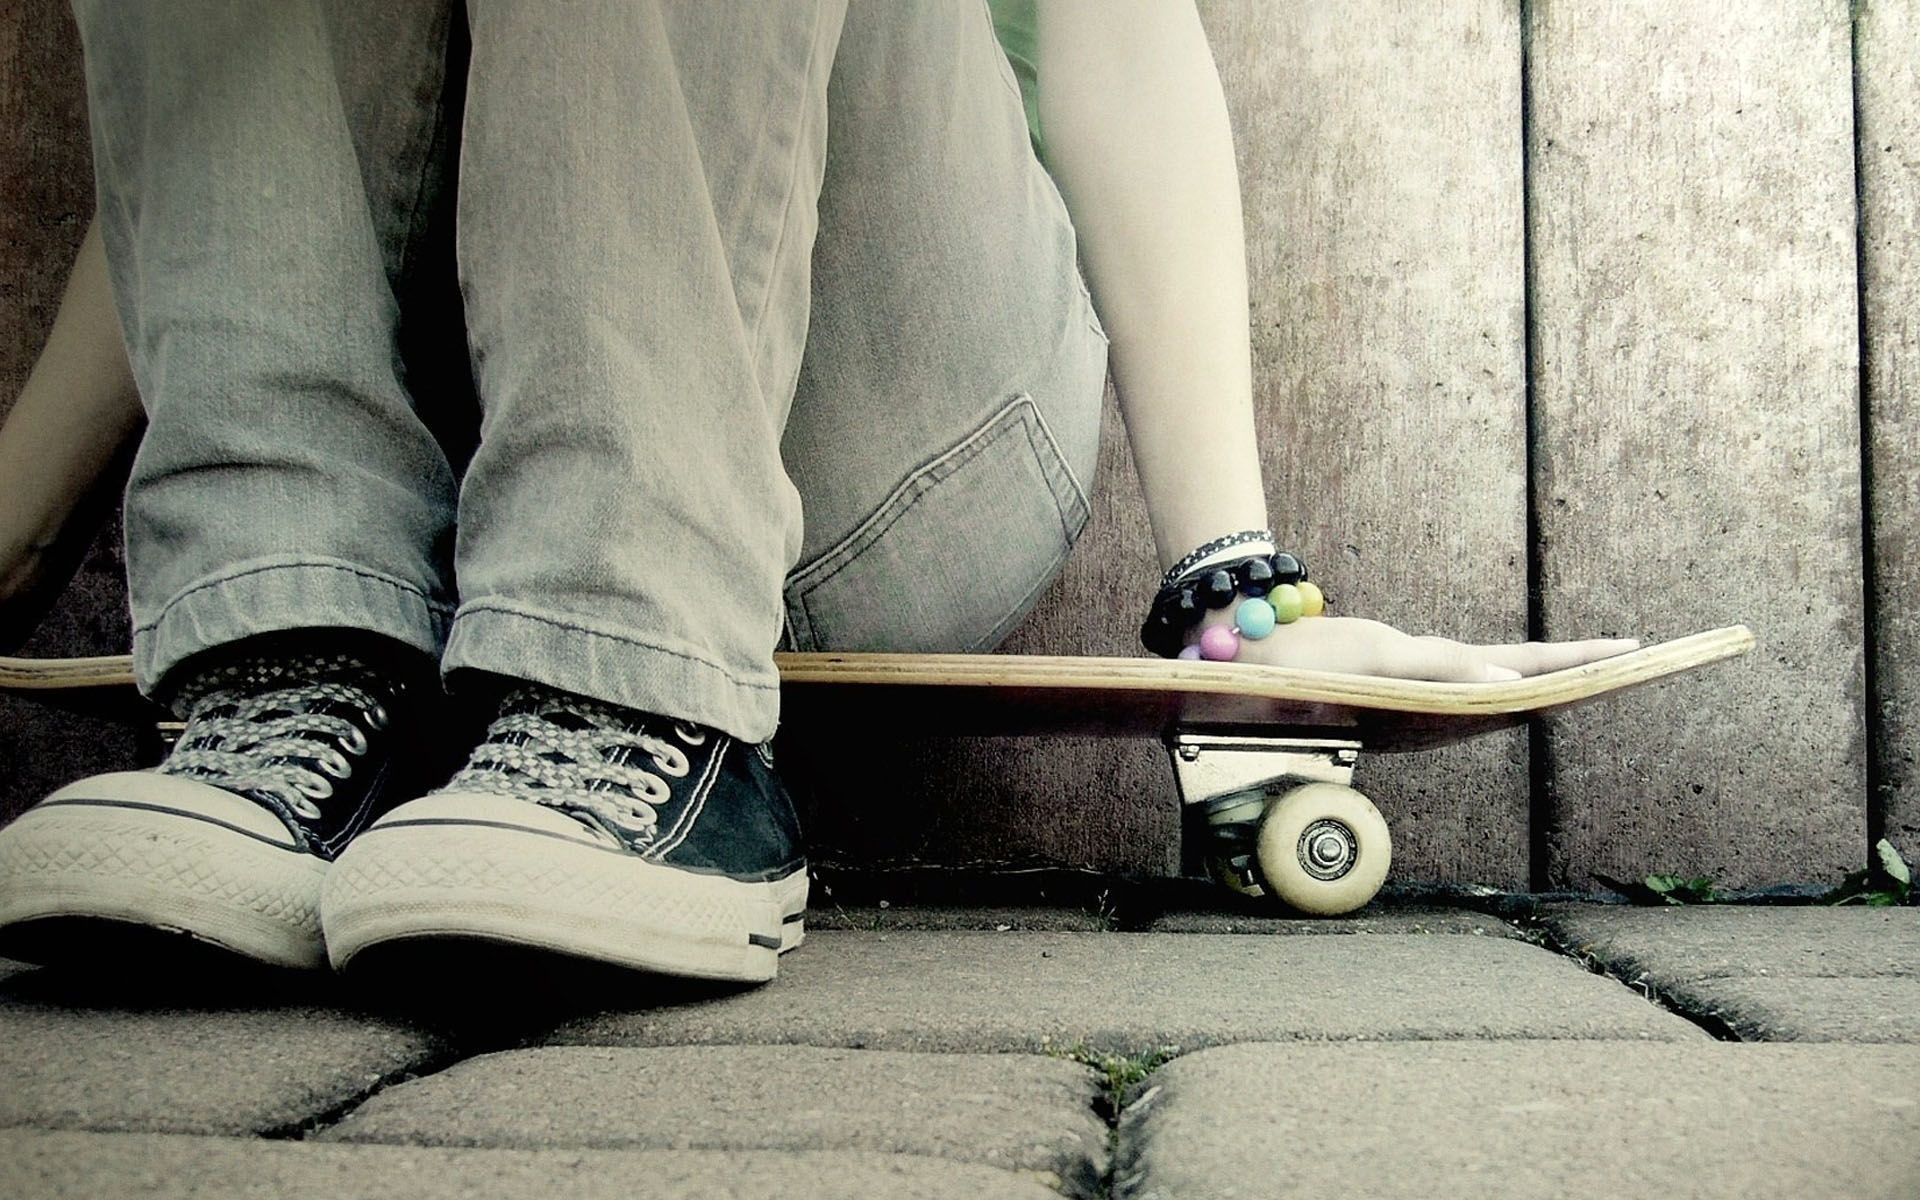 1920x1200 Skateboard Wallpapers High Quality ...